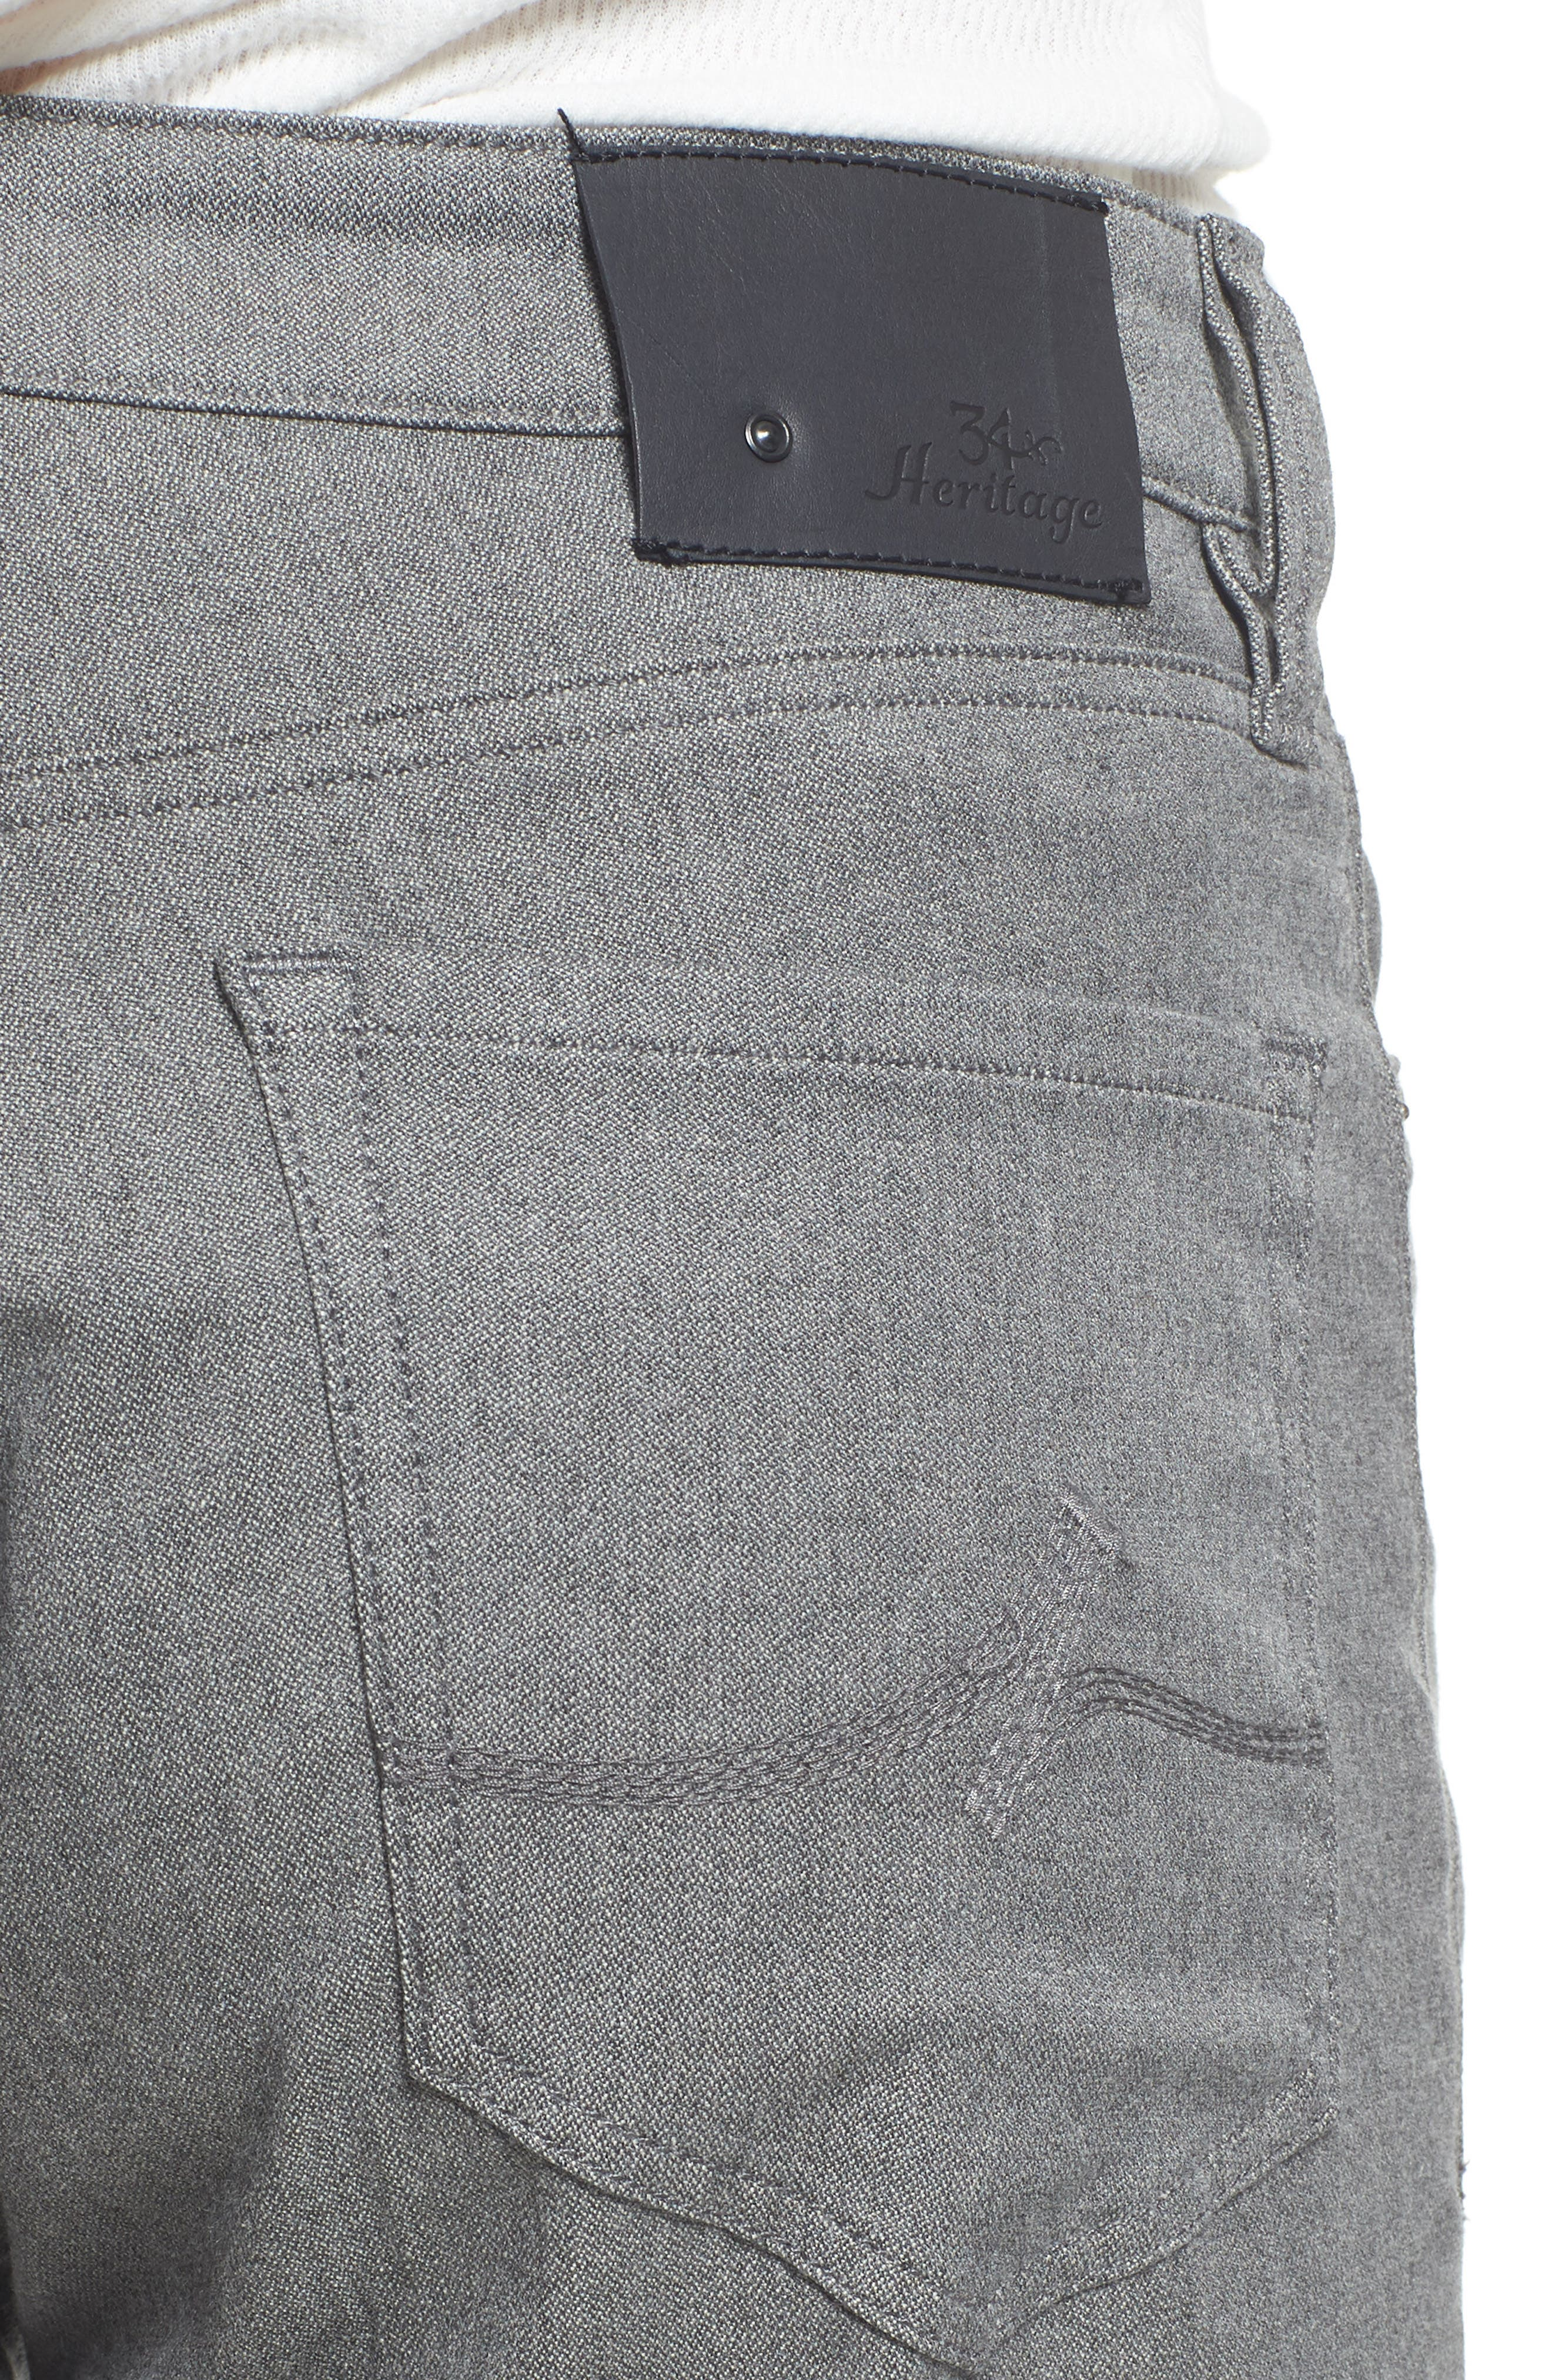 Charisma Relaxed Fit Jeans,                             Alternate thumbnail 4, color,                             Grey Winter Twill